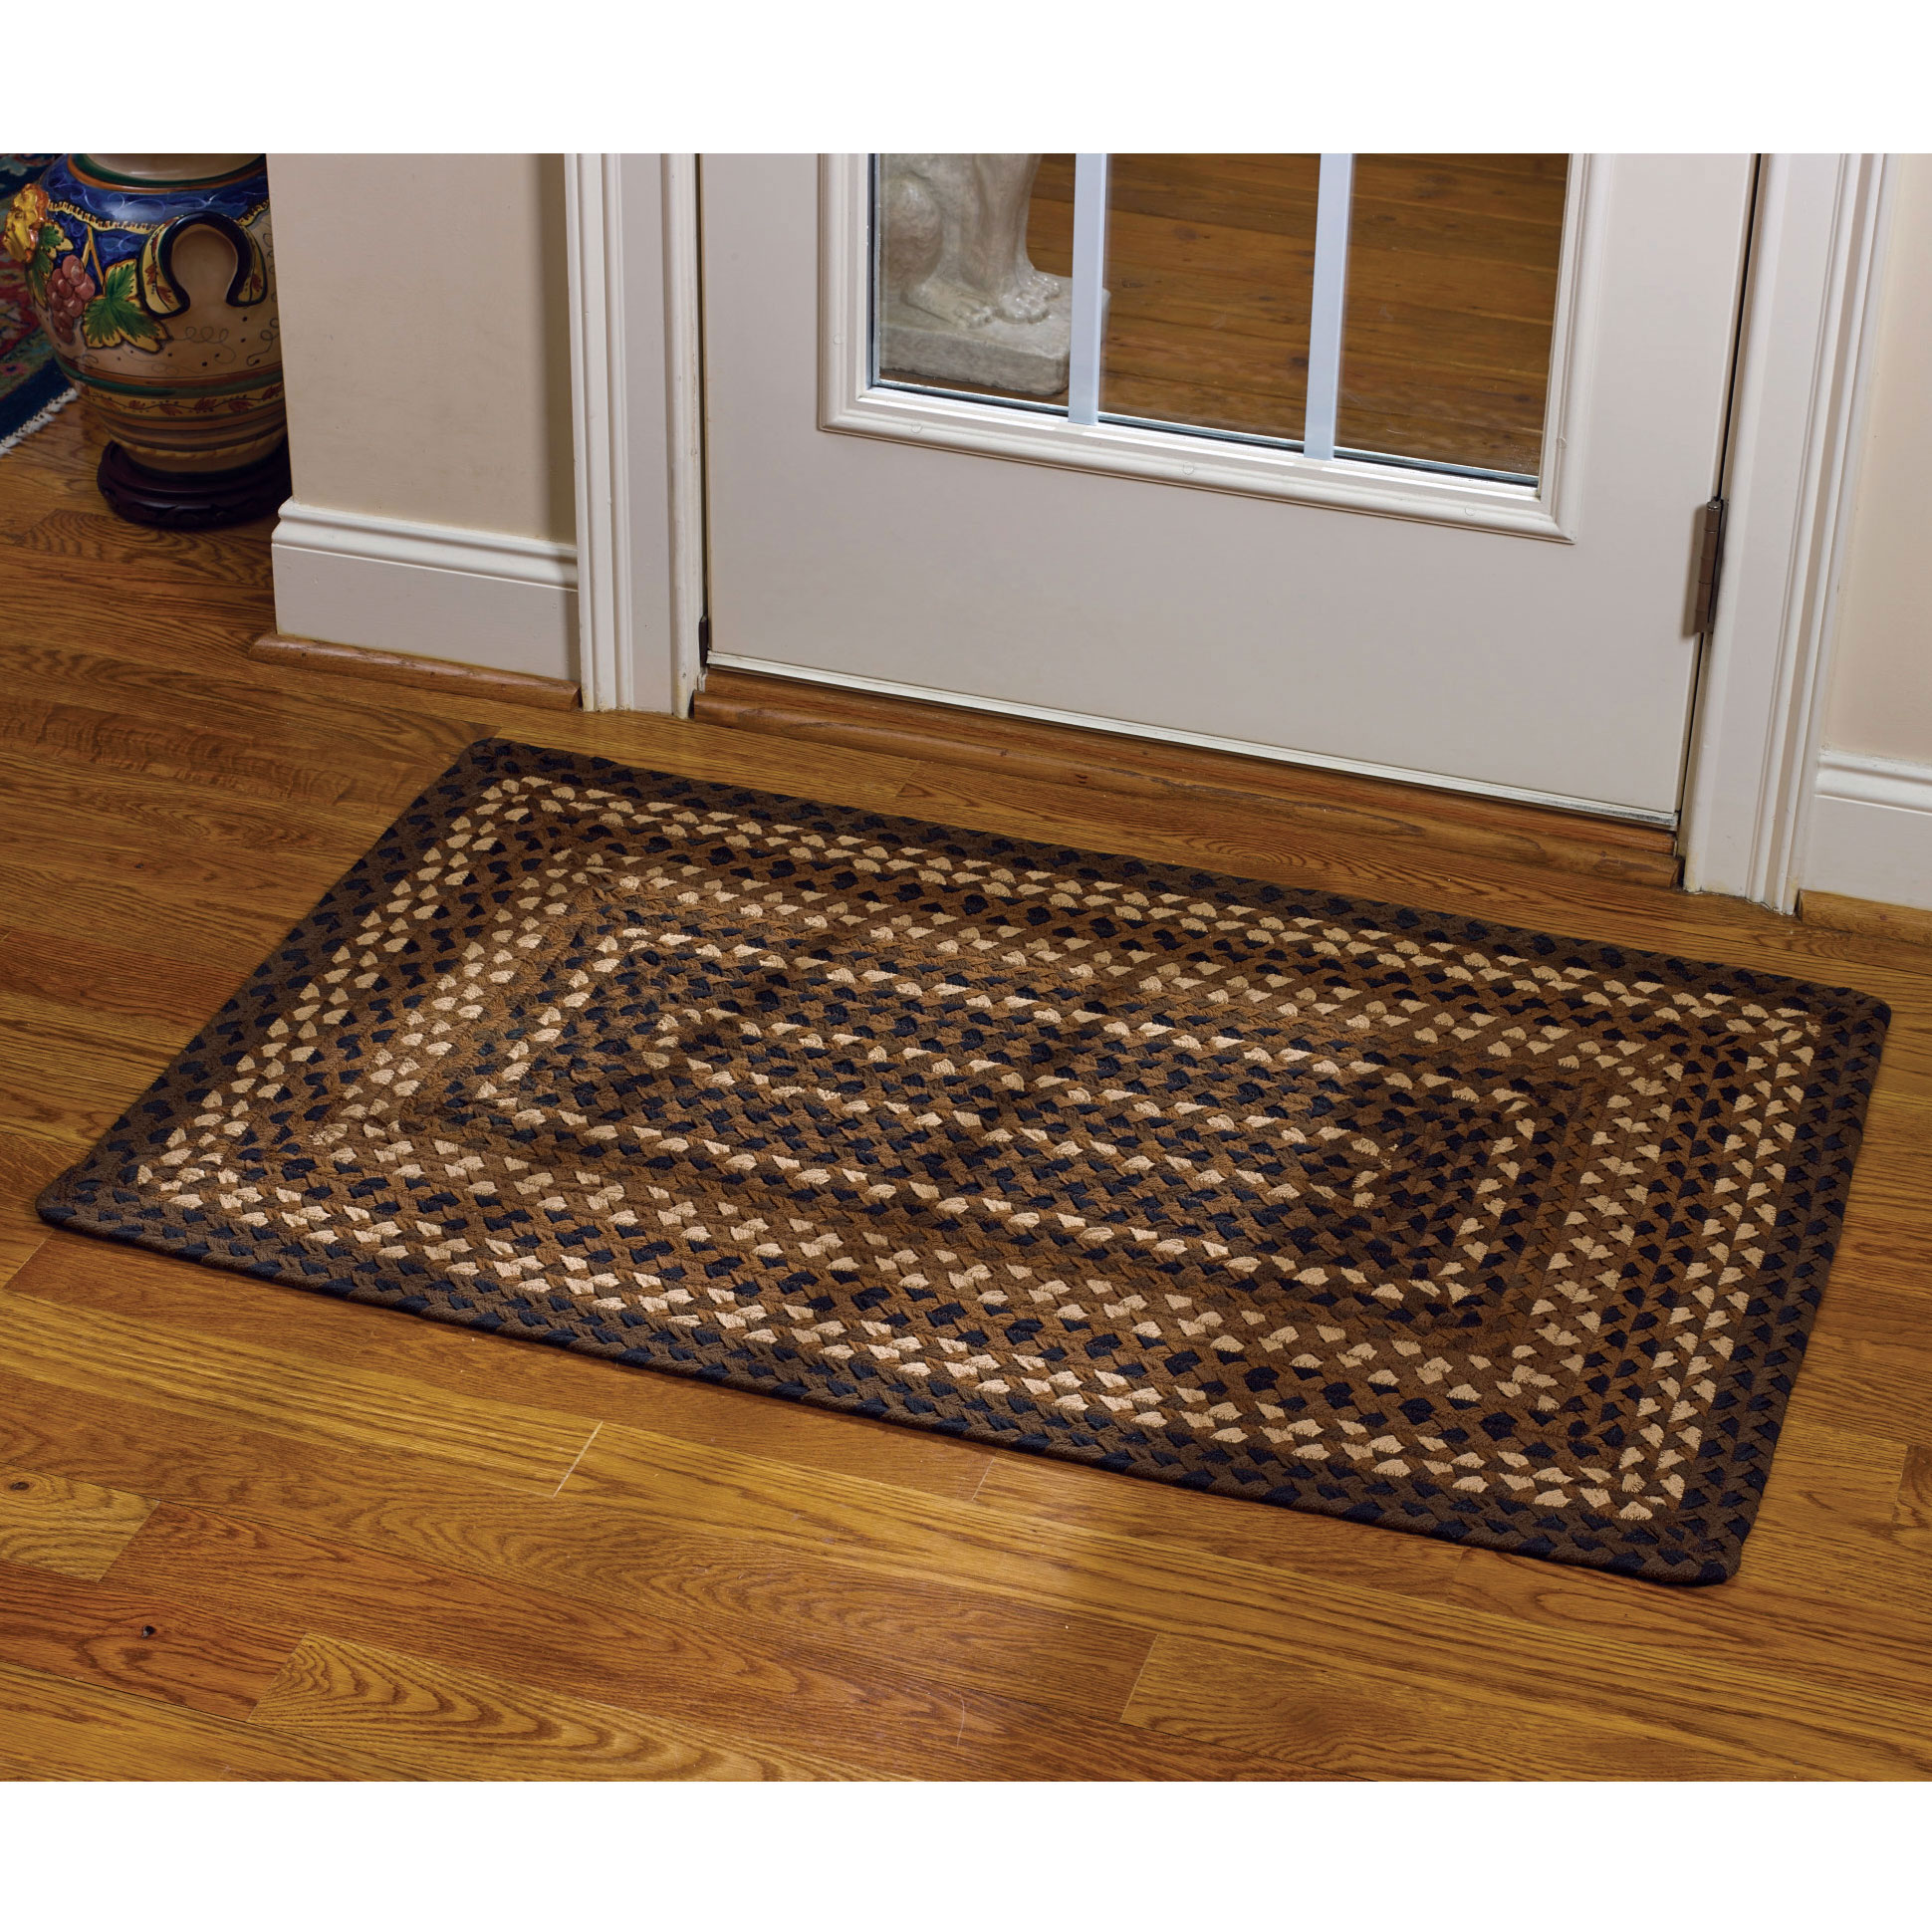 Pkd 384 434 Shades Of Brown Braided Rectangle Rug 27x45 Lrg